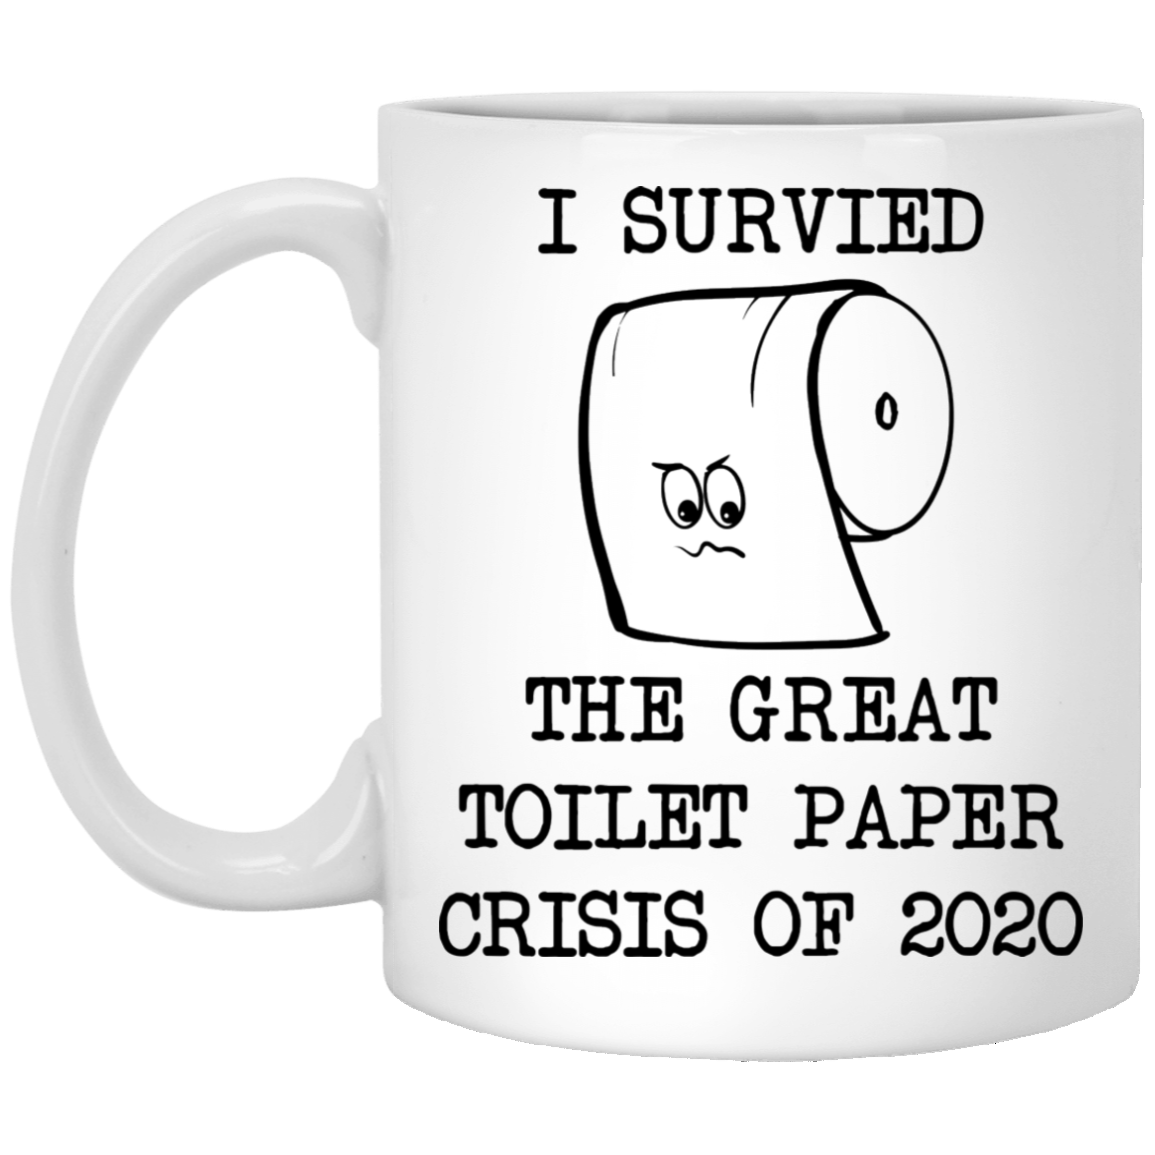 I Survied The Great Toilet Paper Crisis Of 2020 White Mug Mugs White Coffee Mugs Sharpie Coffee Mugs